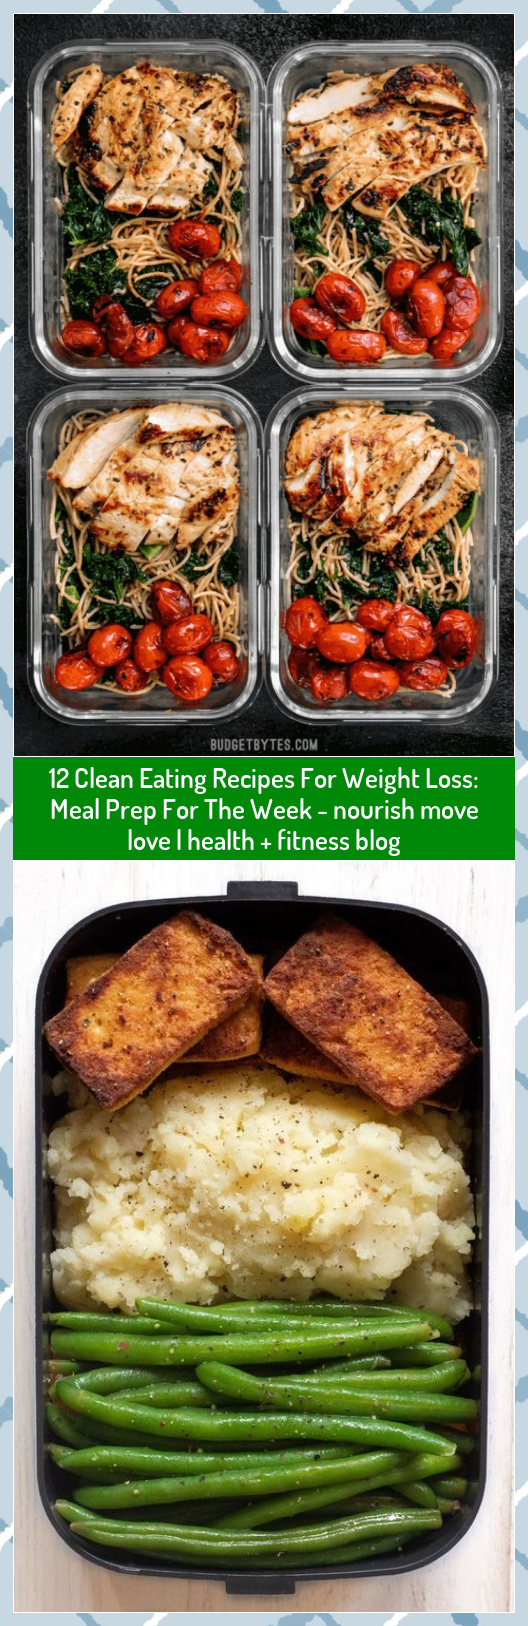 12 Clean Eating Recipes For Weight Loss: Meal Prep For The Week - nourish move love | health + fitness blog #blog #Clean #Eating #fitness #health #Loss #love #Meal #move #nourish #Prep #Recipes #Week #Weight